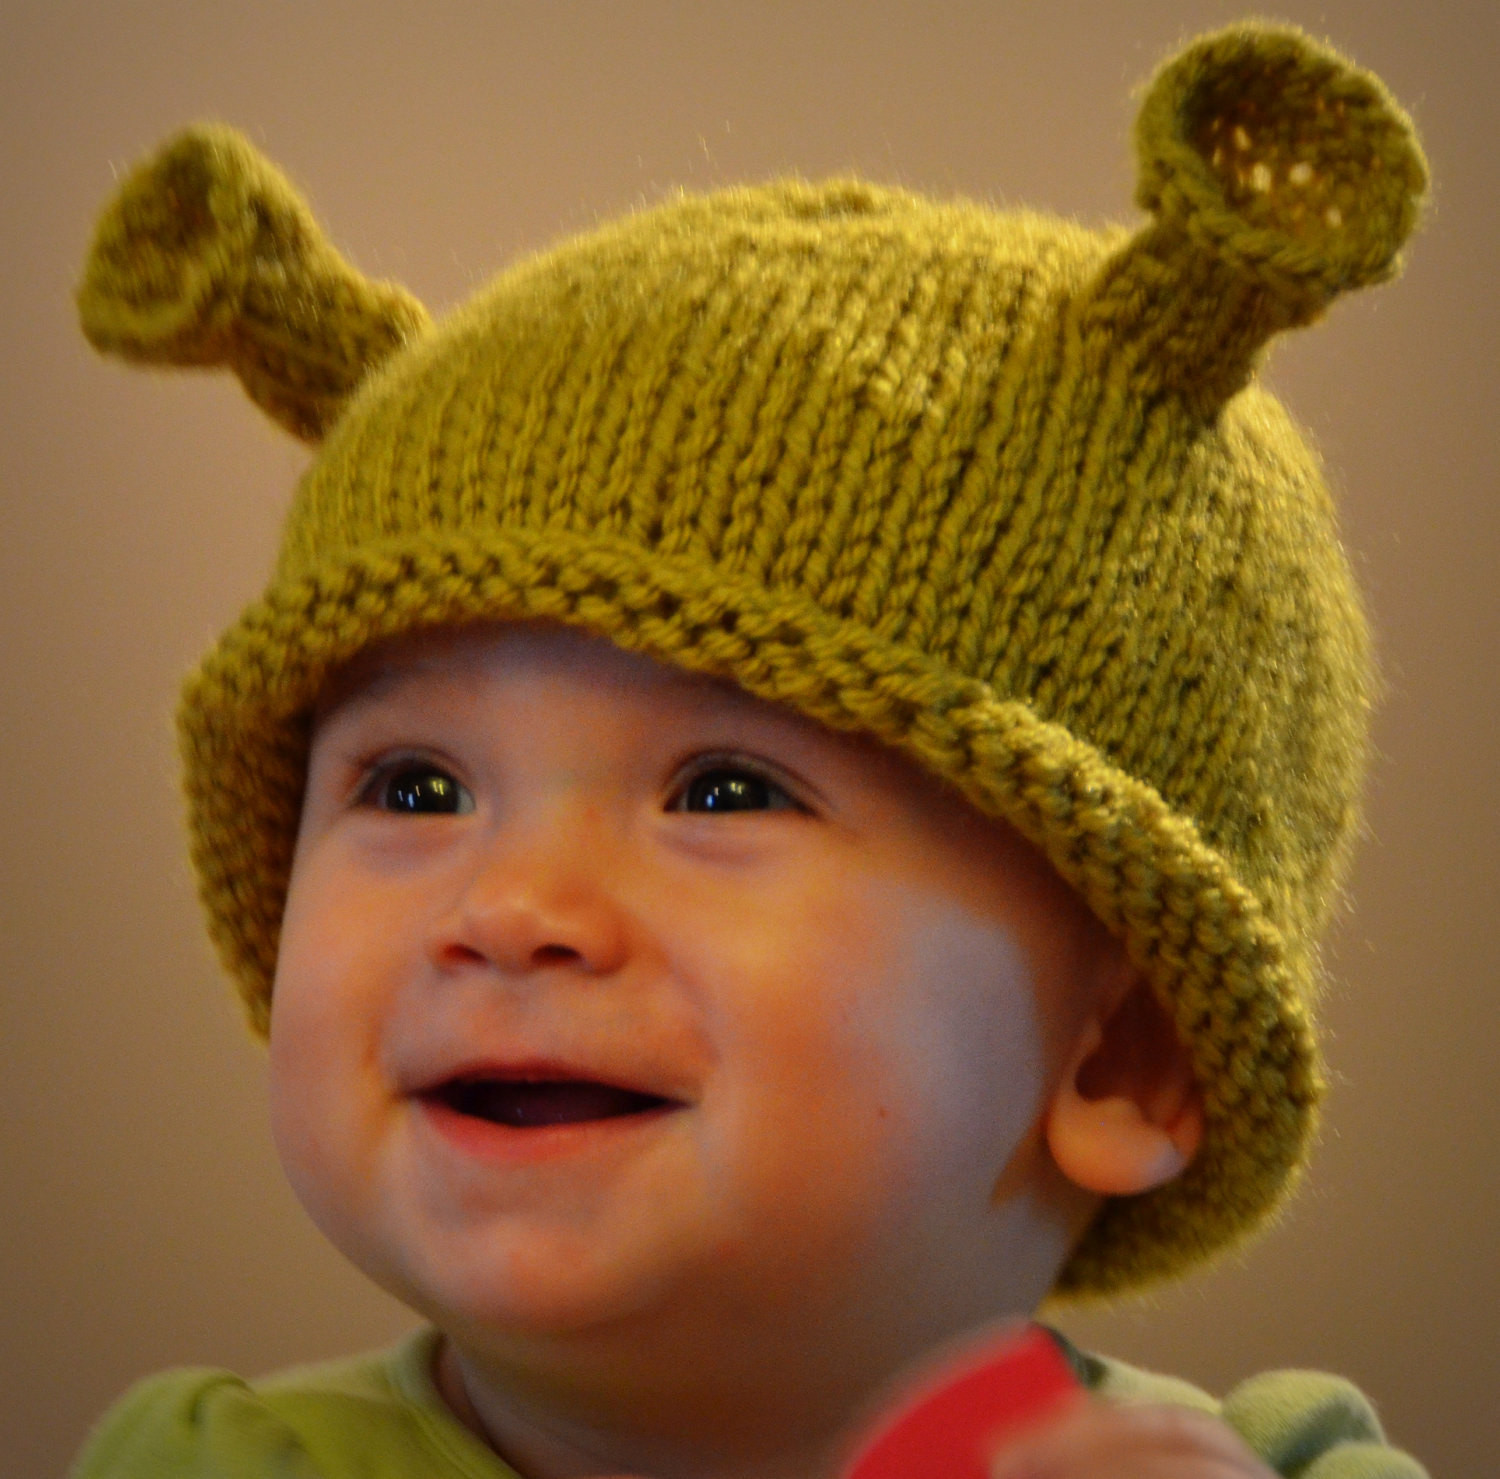 Knitted Baby Hats Best Of Knit Ogre Hat Hand Knitted Baby Shrek Hat Prop Newborn Of Awesome 41 Images Knitted Baby Hats